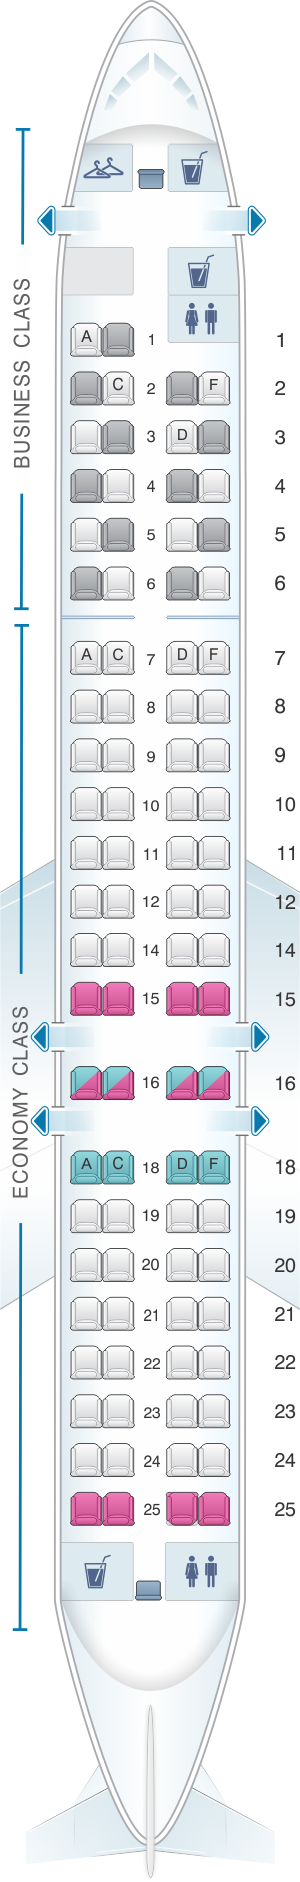 Seat map for Lufthansa Bombardier Canadair CRJ 900